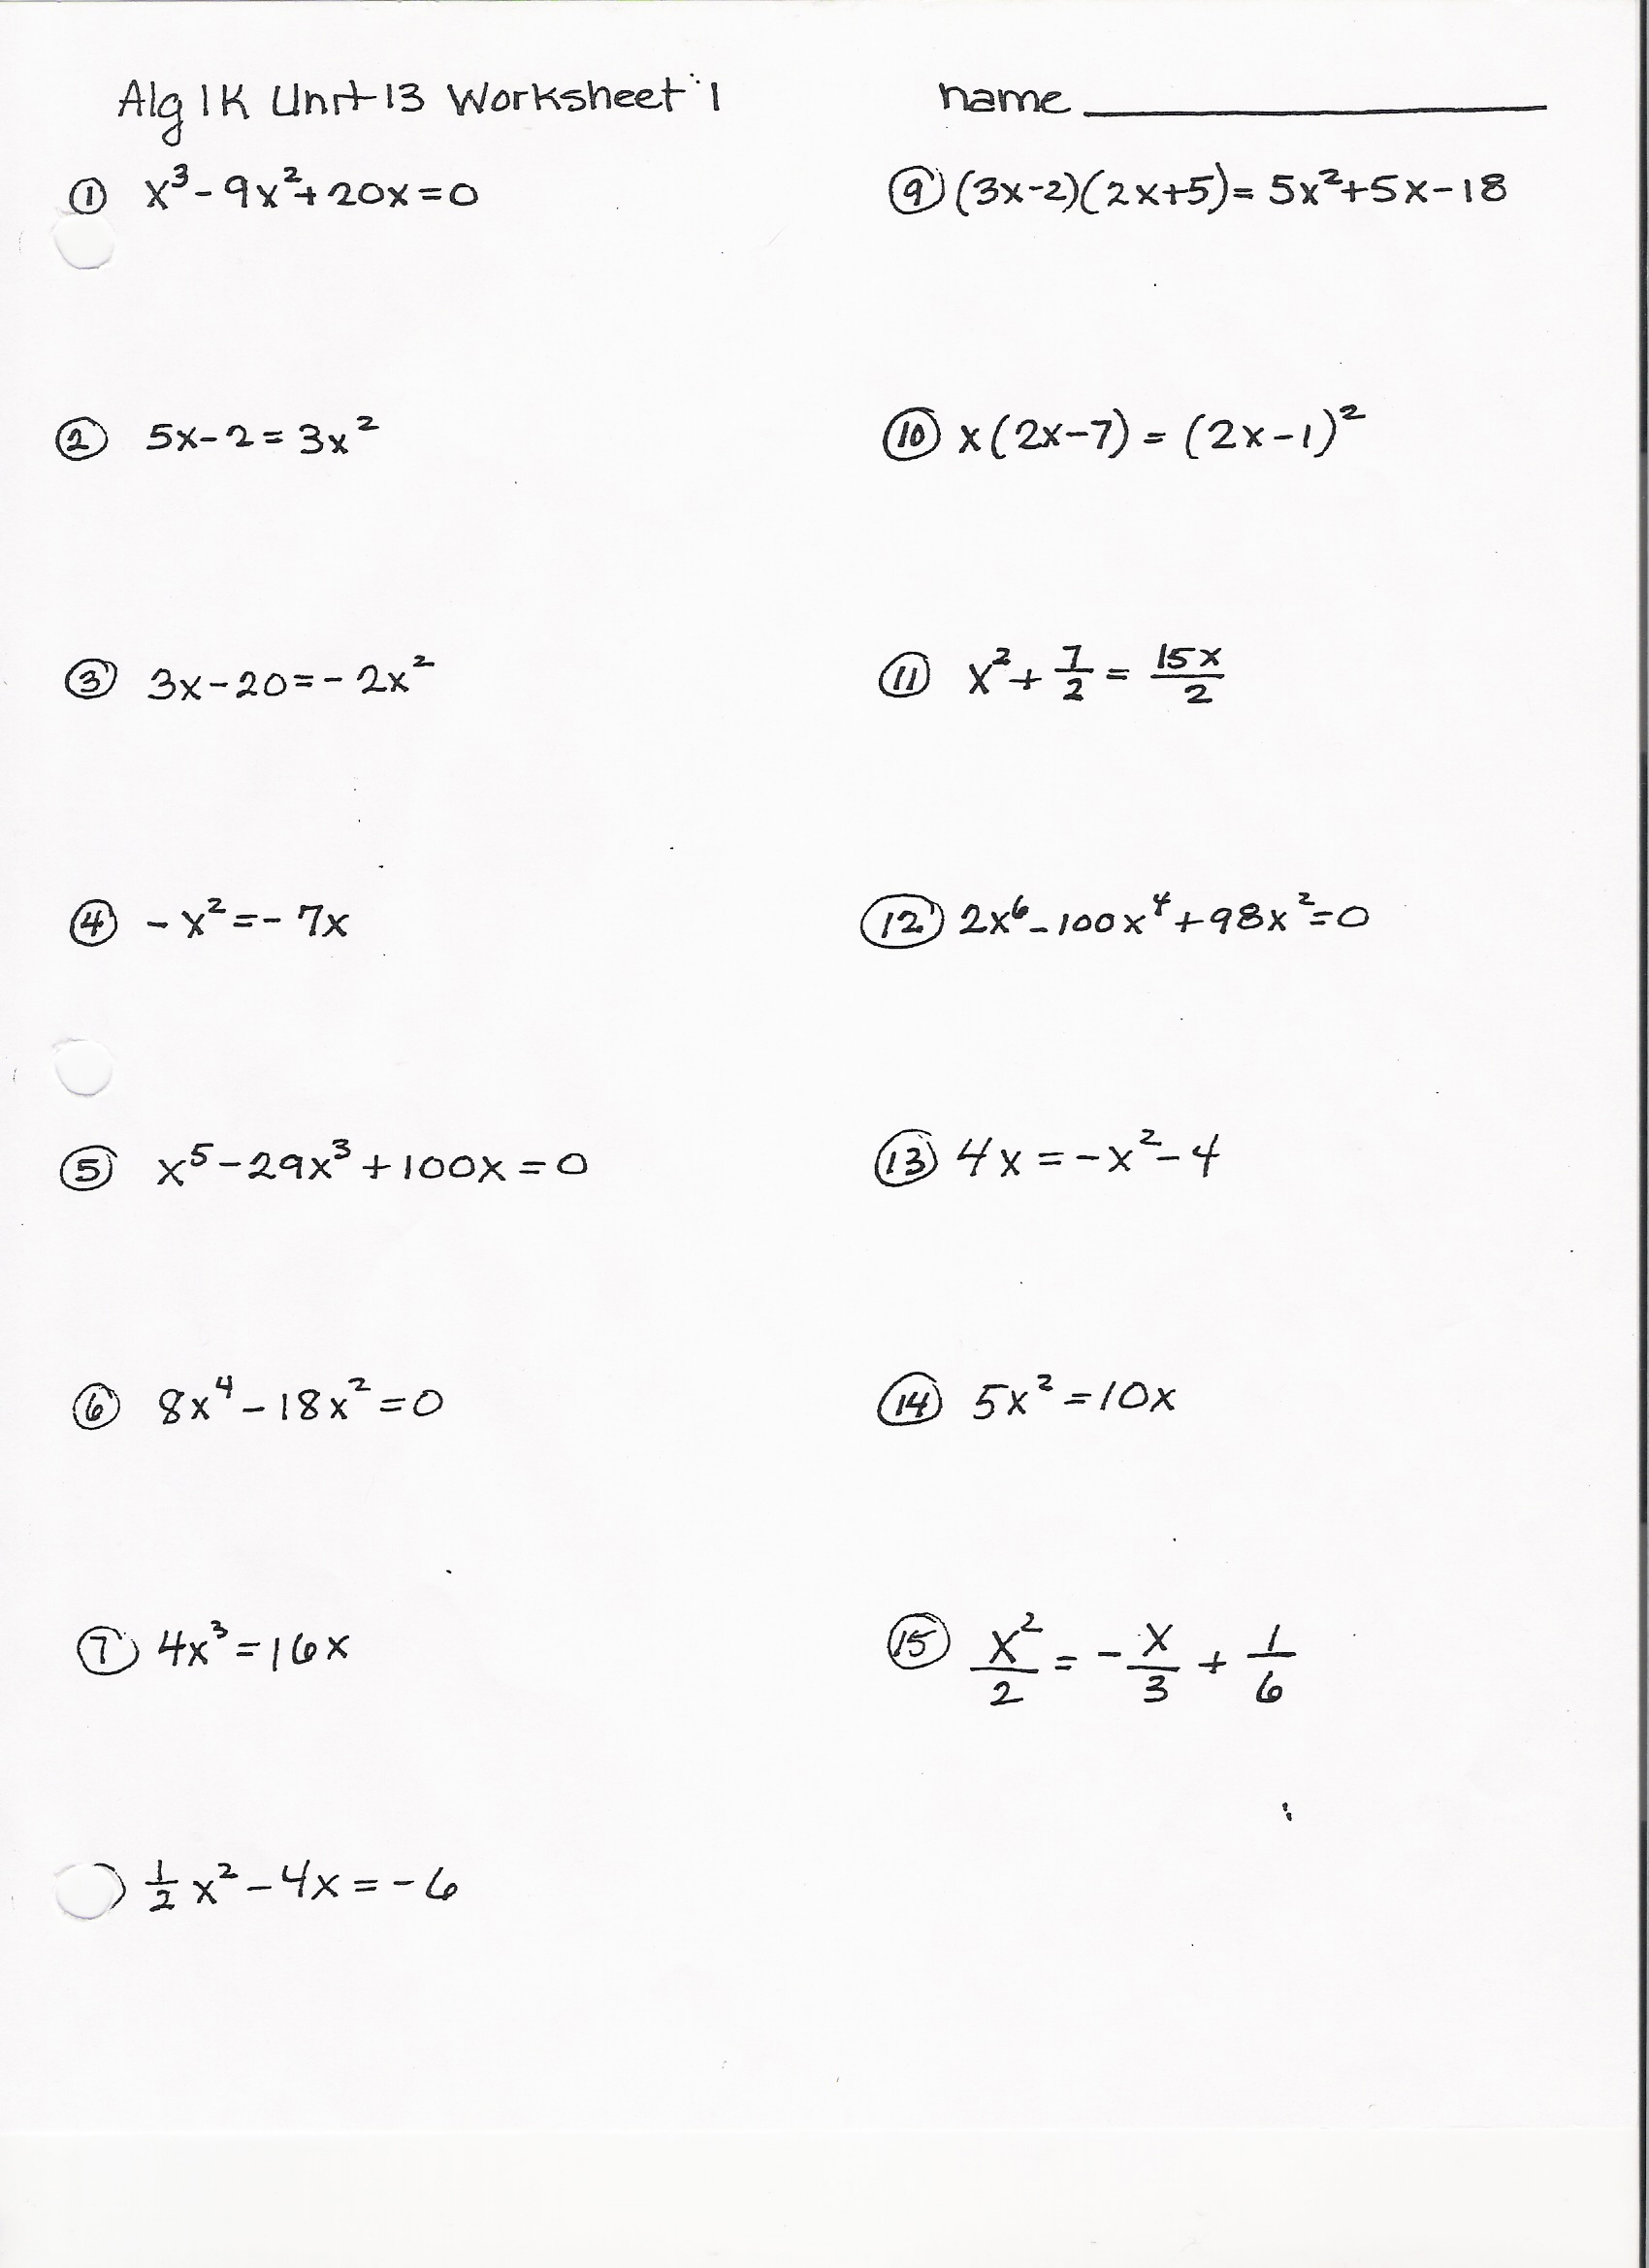 11 Best Images Of Factoring Worksheets Algebra Ii